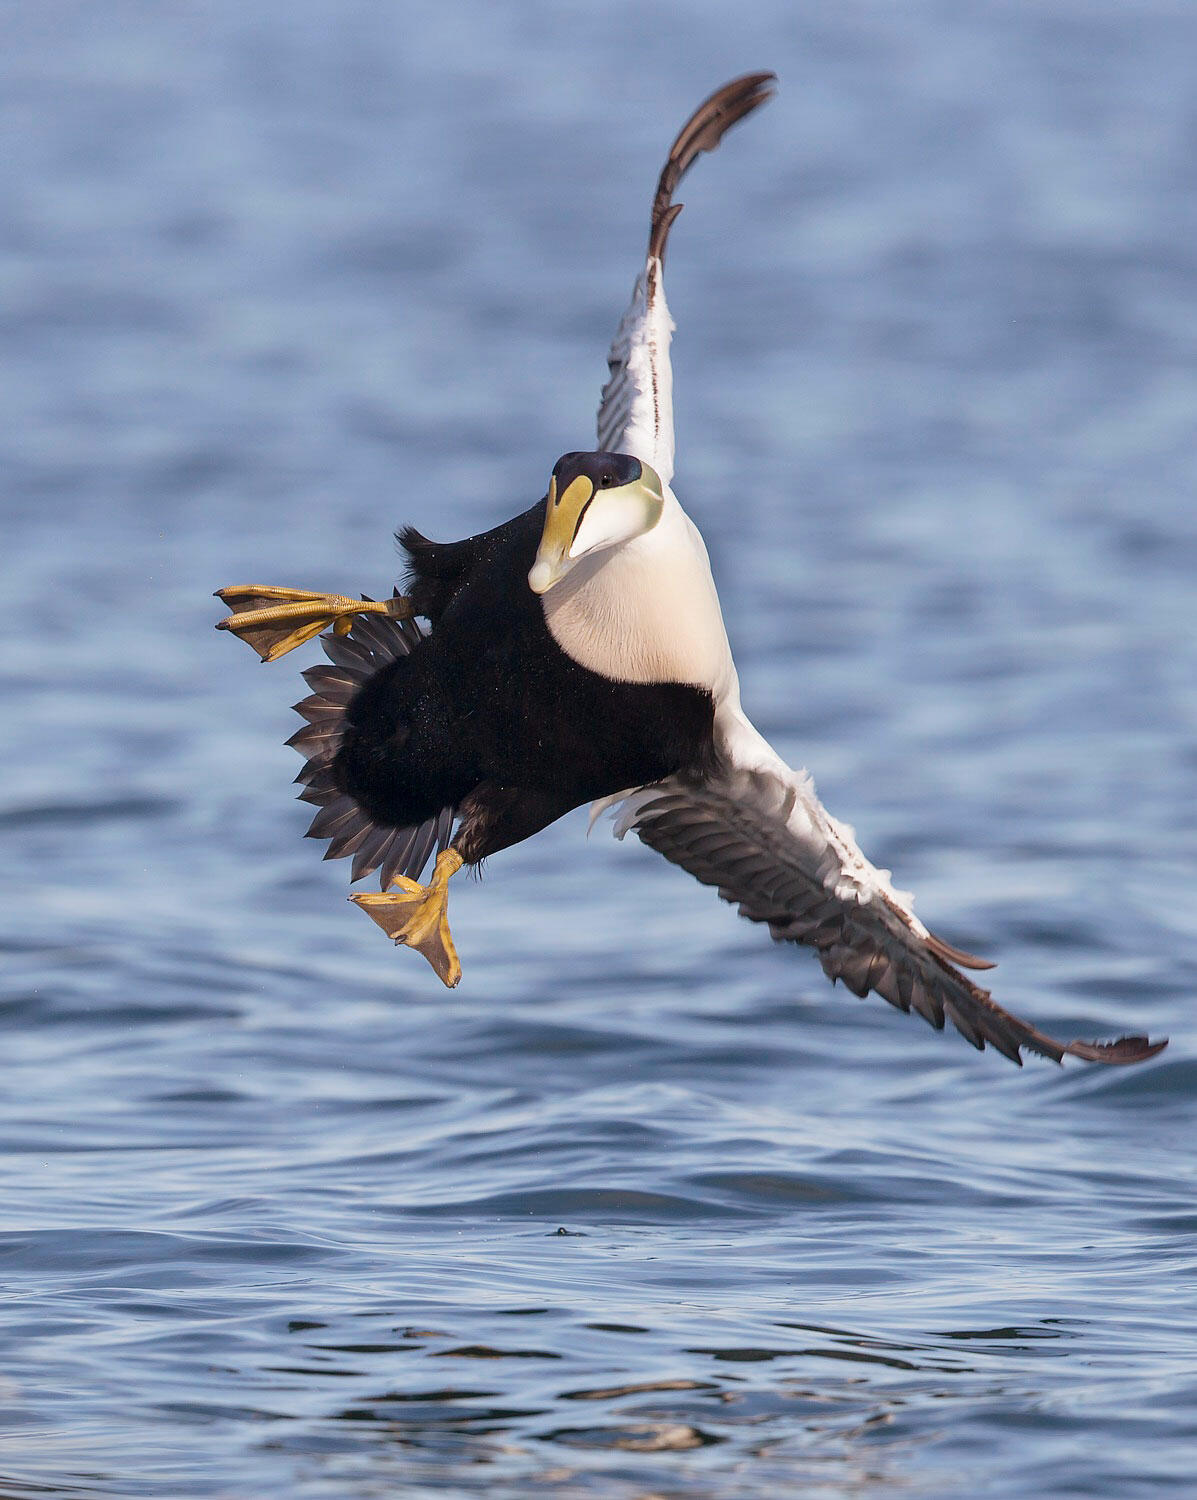 Watch out! There's an acrobatic Common Eider incoming! Brian Zwiebel